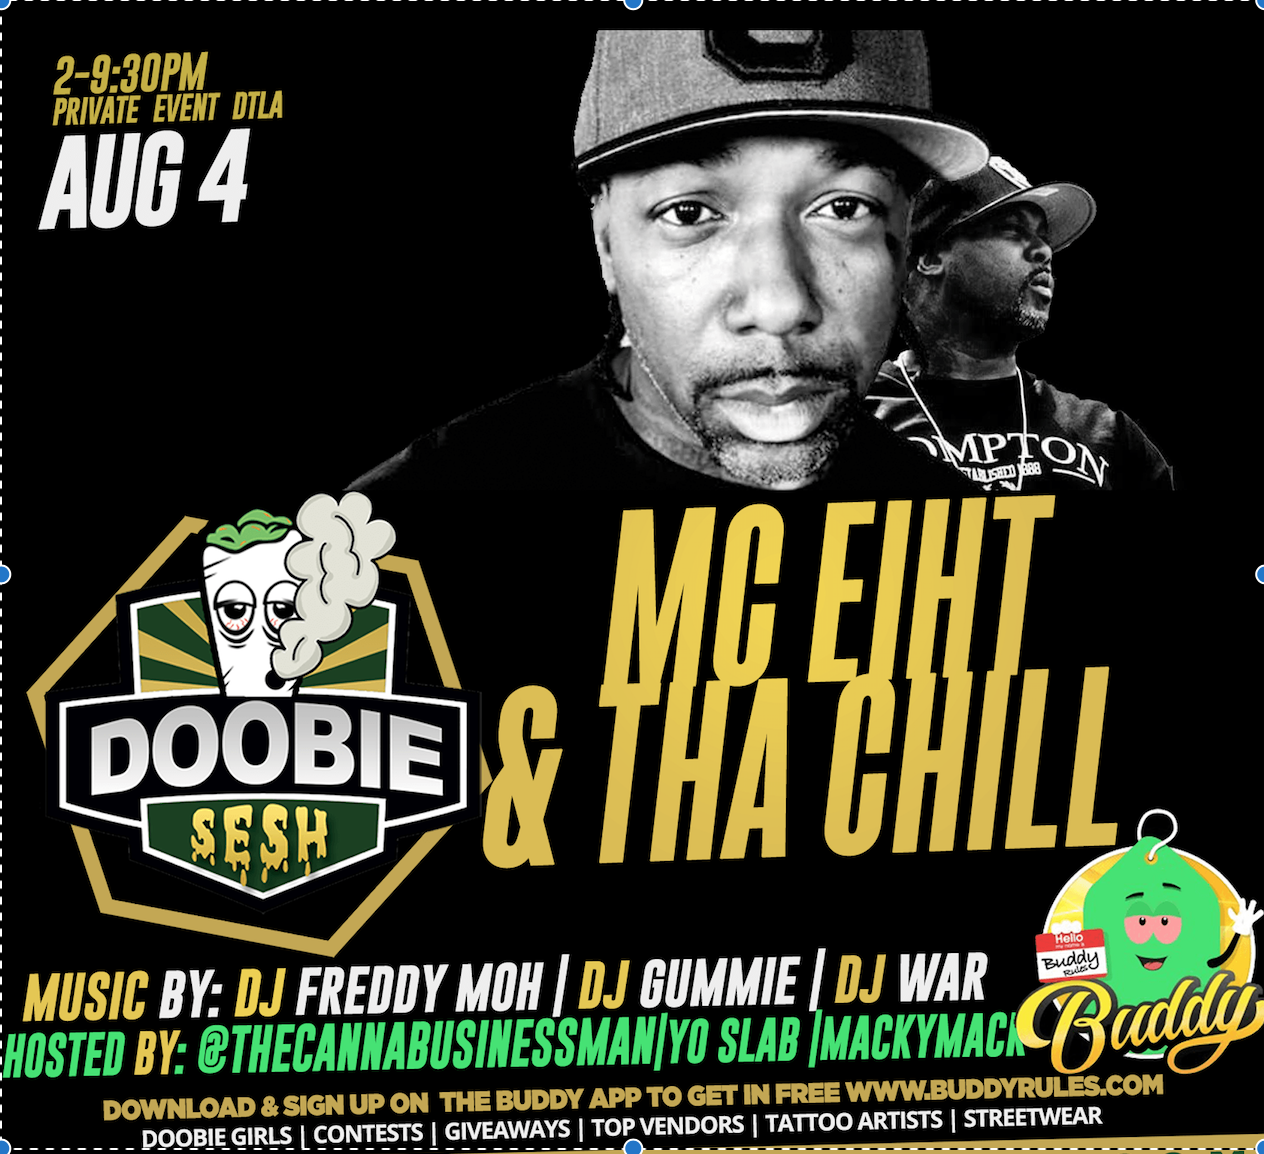 Doobie Sesh Celebrity Smokeout with MC Eiht & The Chill